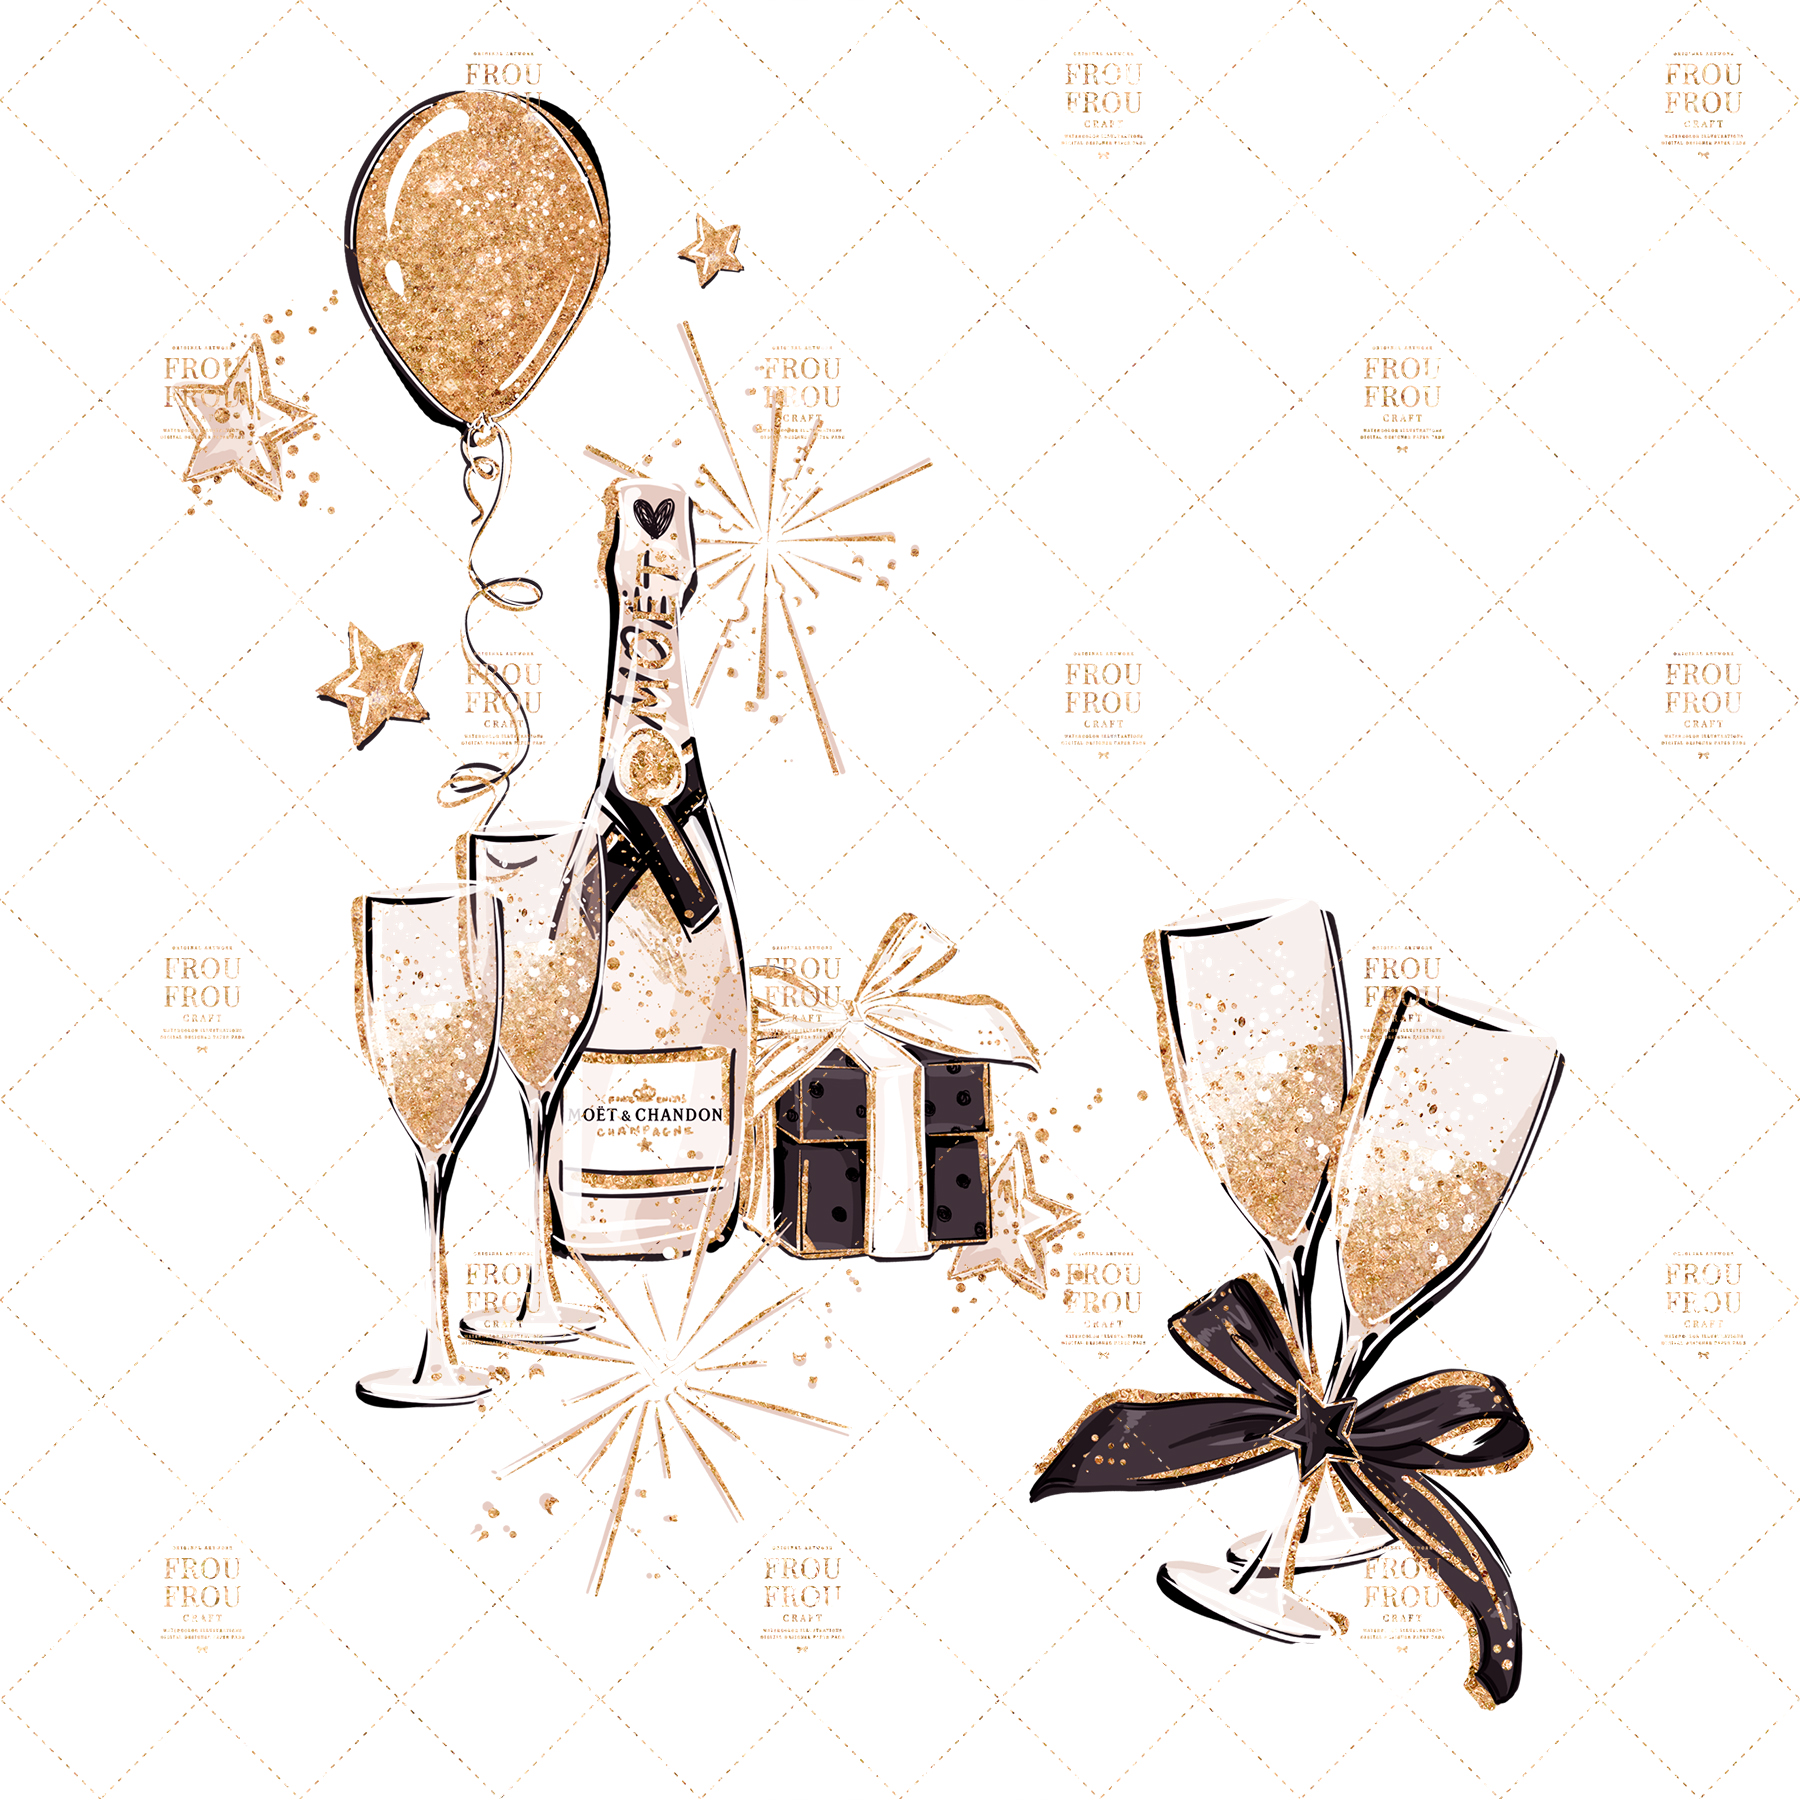 Fashion Girl New Year Party Gold Glitter Clip Art example image 3